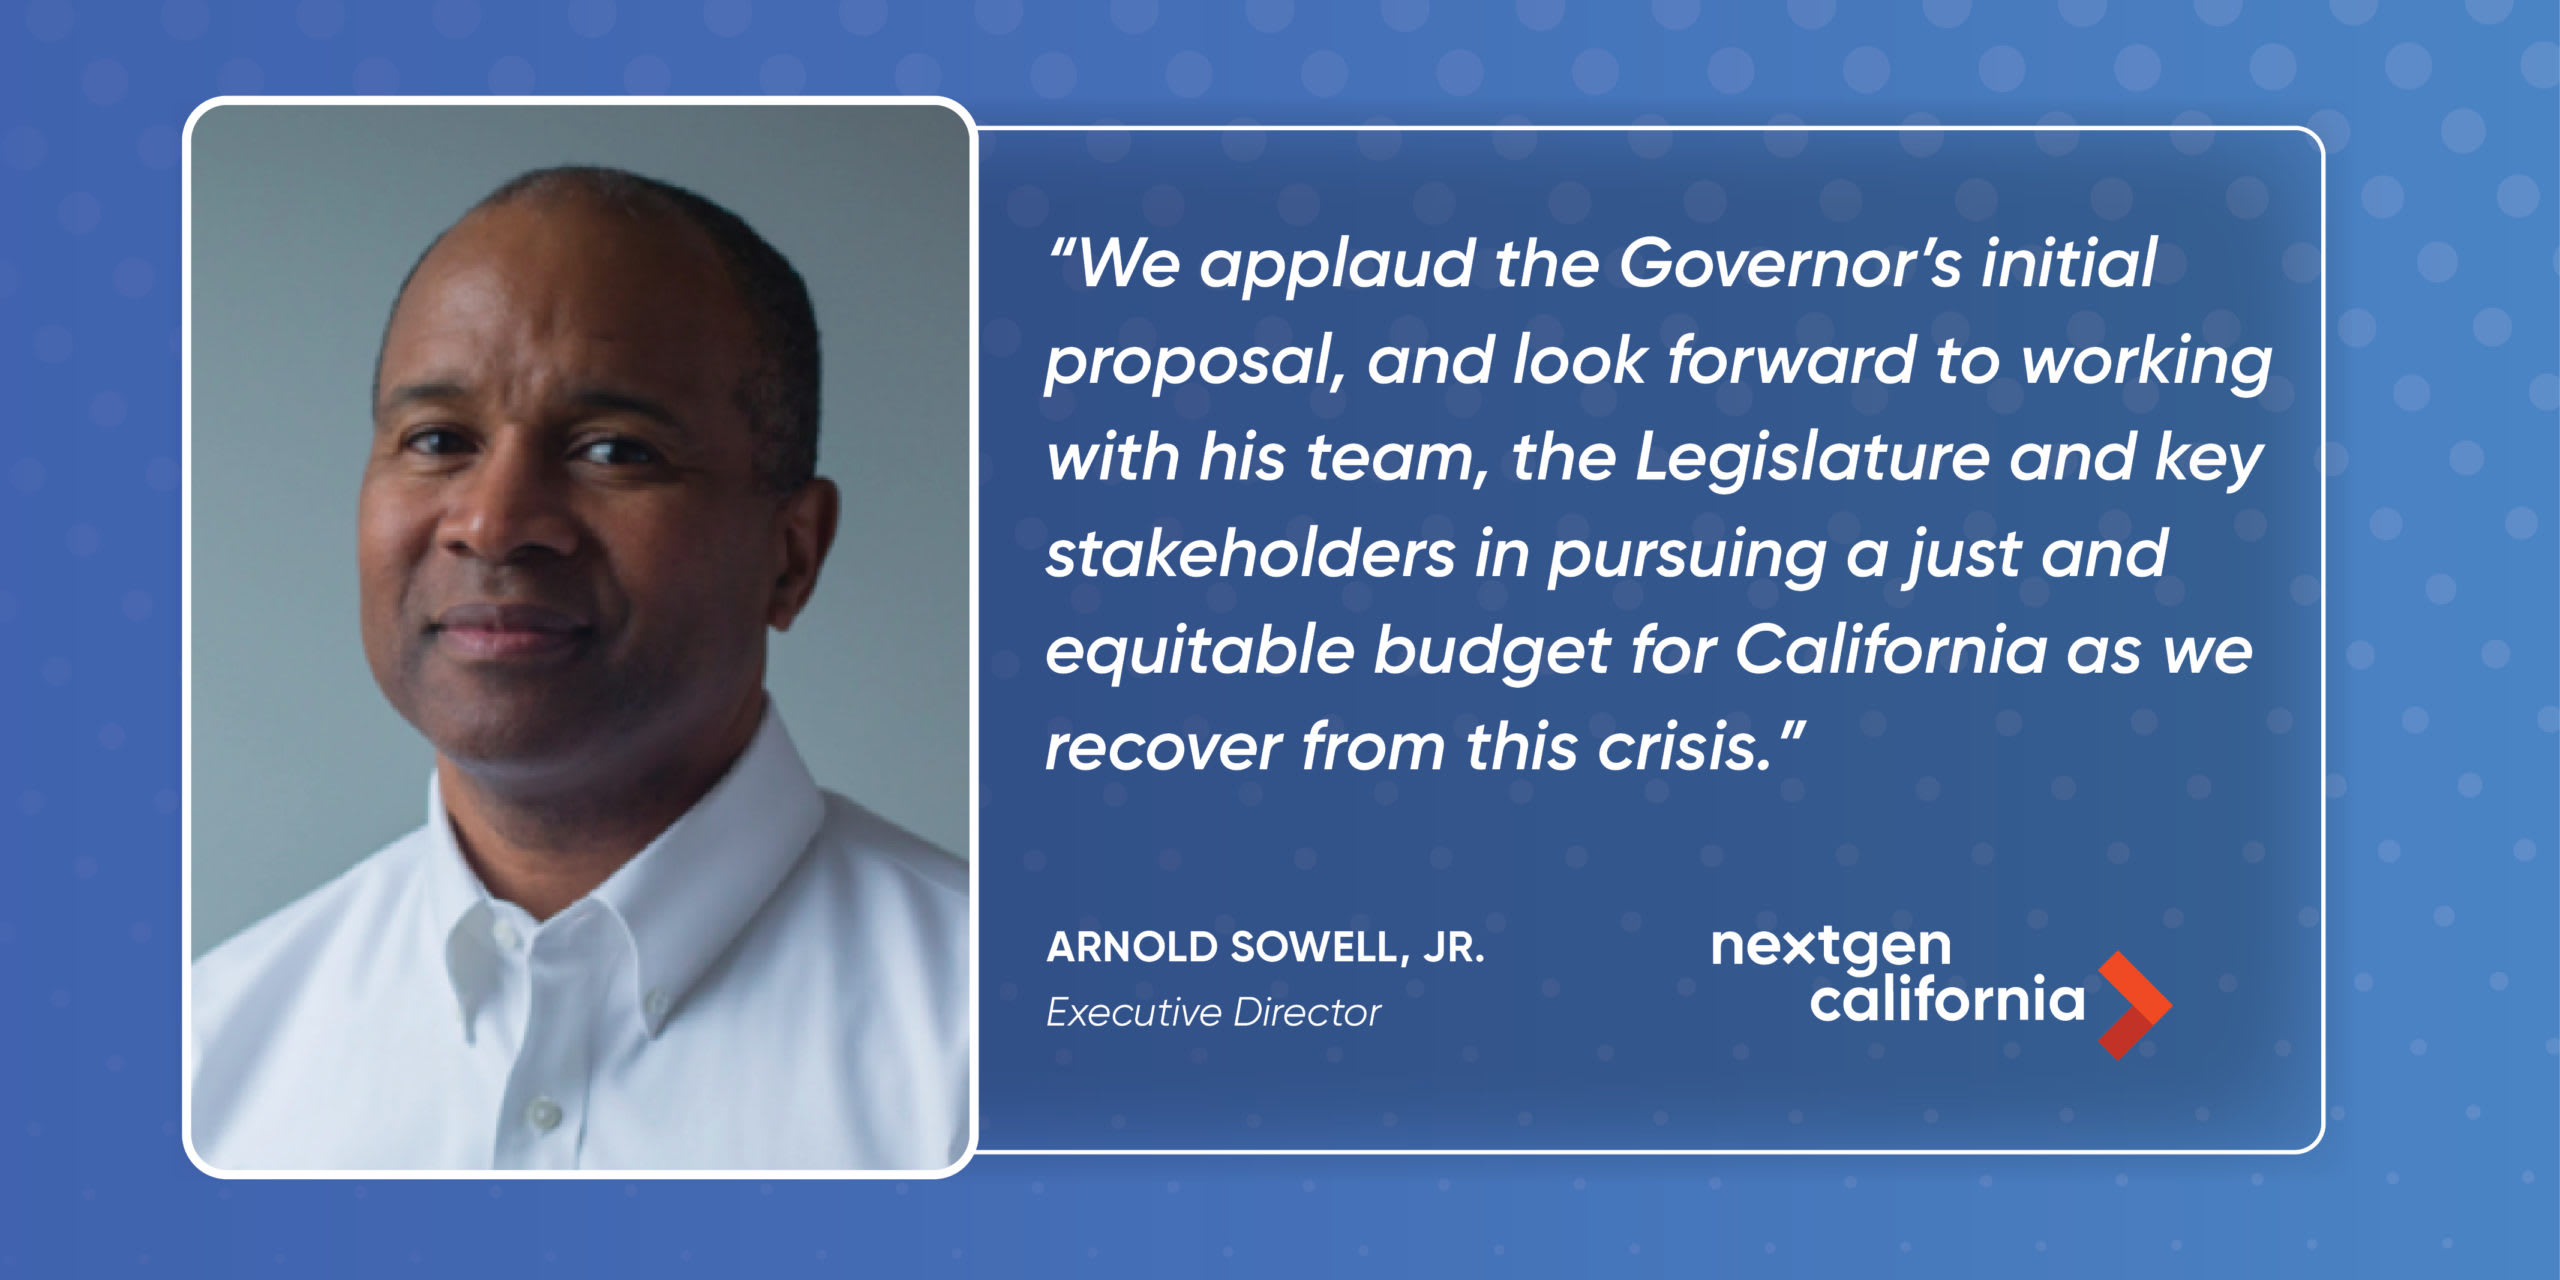 We applaud the Governor's initial proposal, and look forward to working with his team, the Legislature and key stakeholders in pursuing a just and equitable budget for California as we recover from this crisis.